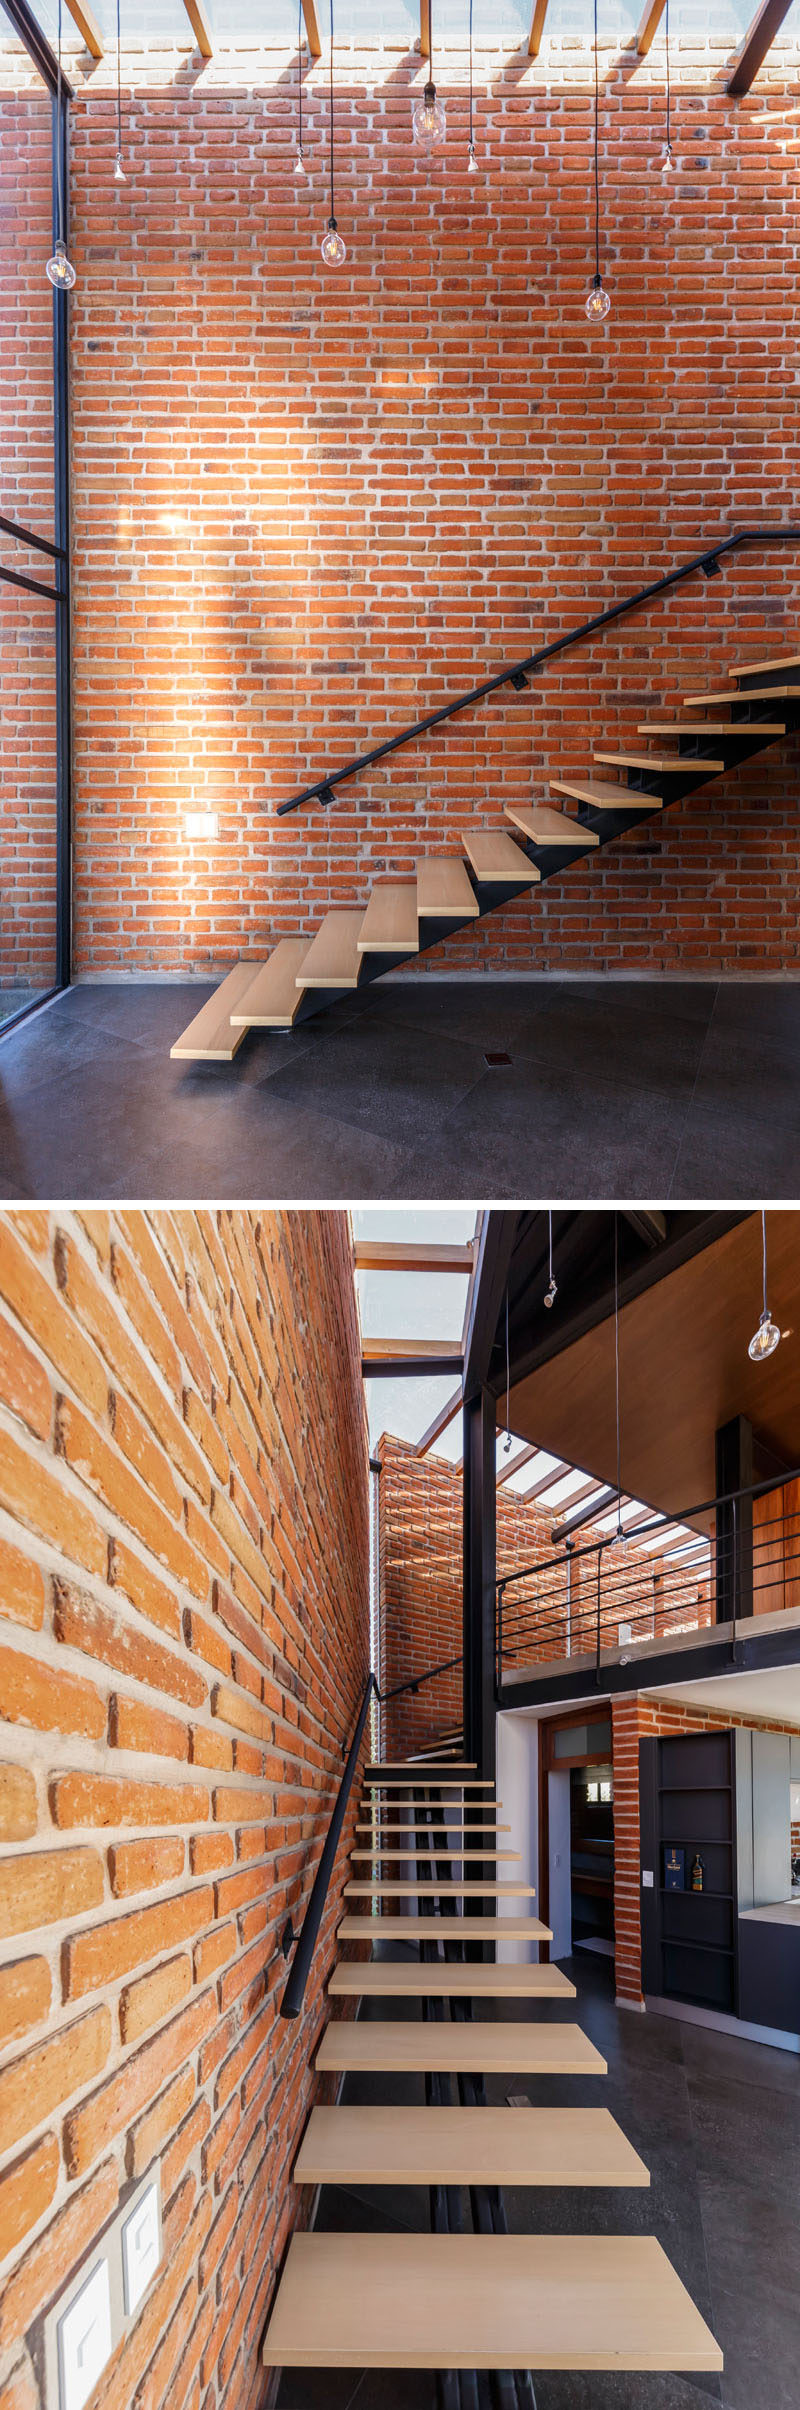 This modern house has wood stairs that run alongside a brick wall, while a skylight adds natural light to the space. #BrickWall #ModernStairs #Skylight